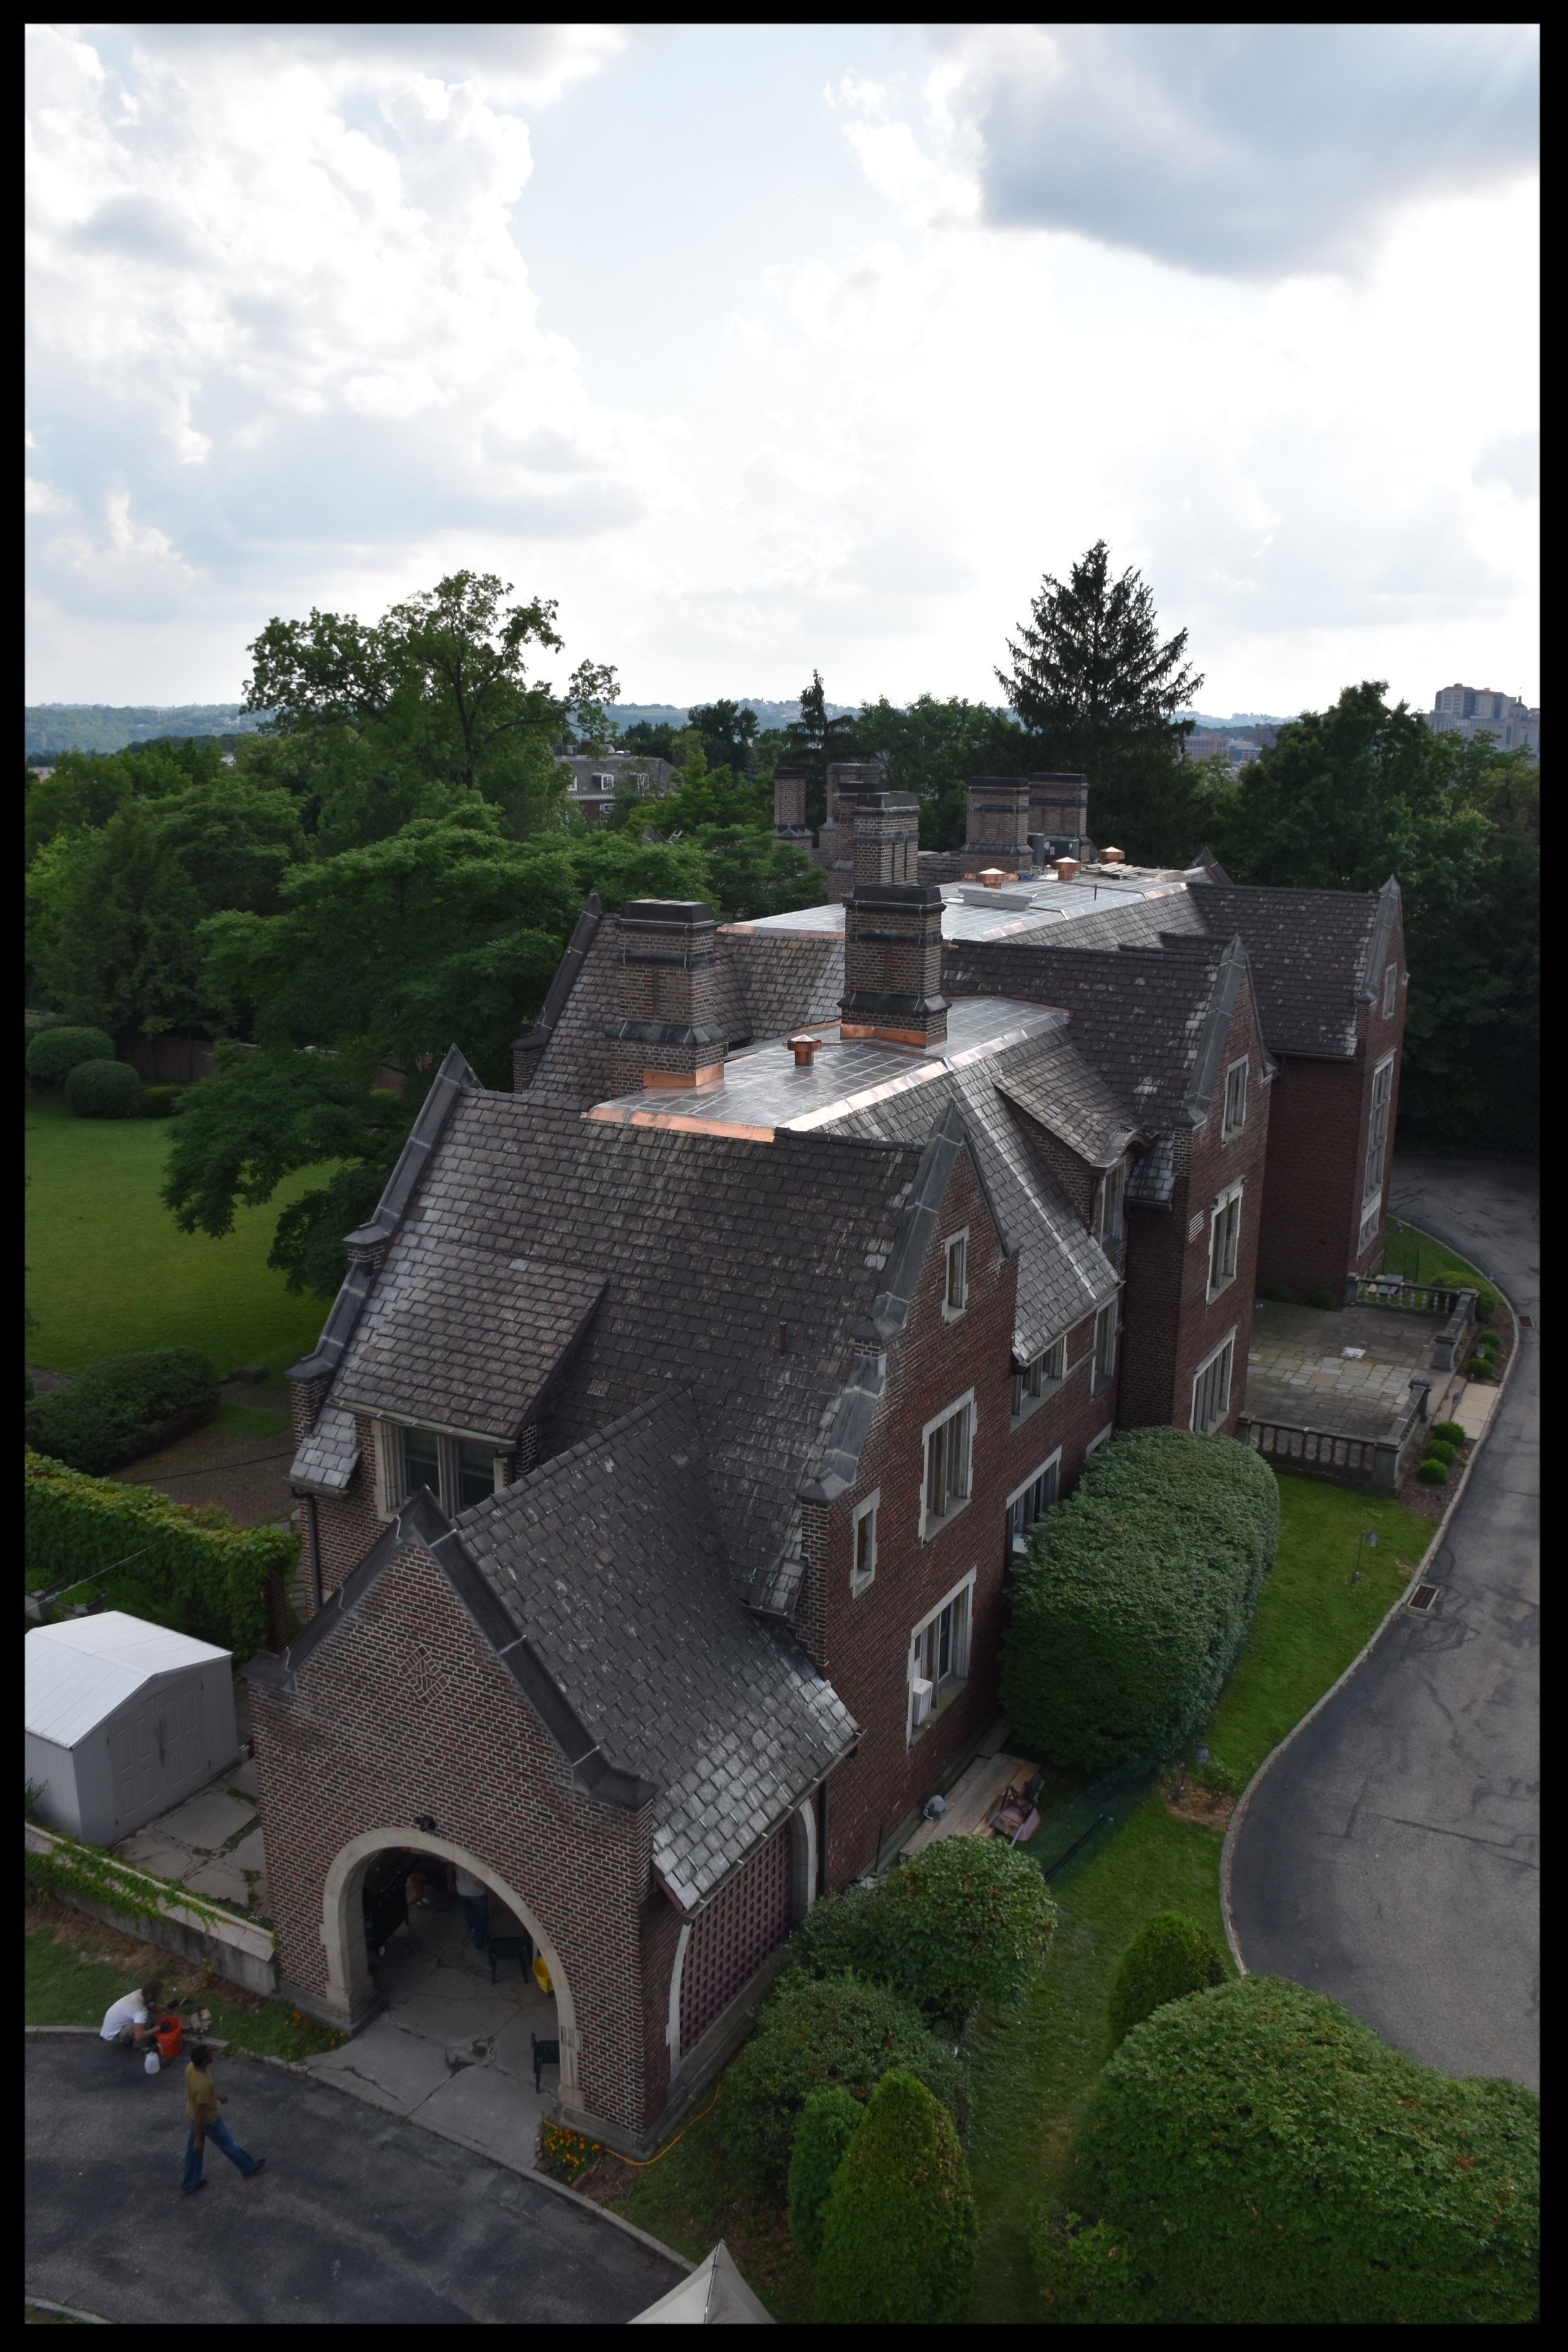 Heinz Mansion Restoration - Complete restoration of Heinz Mansion (now Warwick Foundation) located in Pittsburgh, PA. (Completed July 2016).